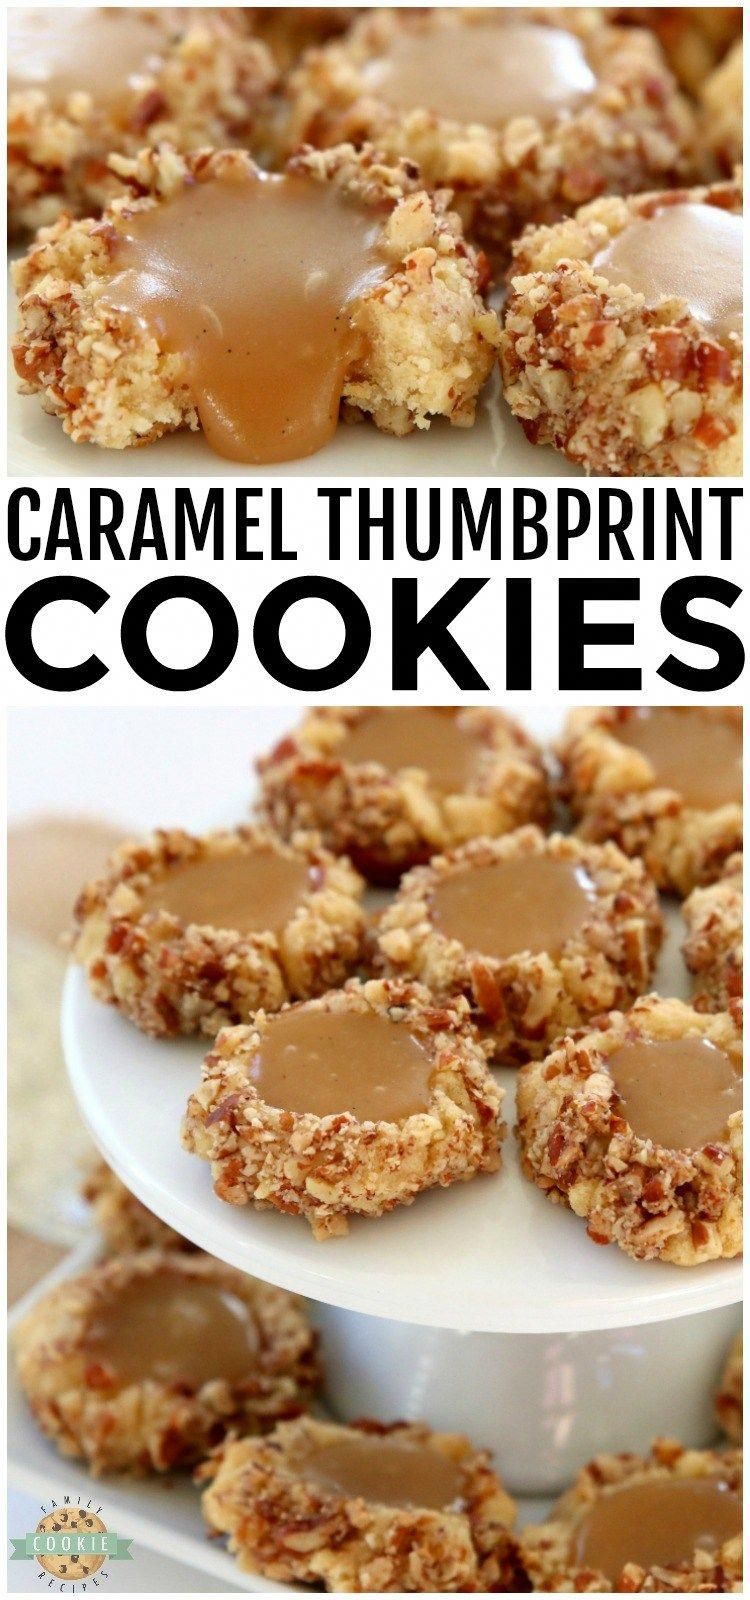 Caramel Thumbprint Cookies are a classic shortbread cookie rolled in pecans baked  filled with warm caramel Buttery Christmas cookies that everyone loves seeing at holida...